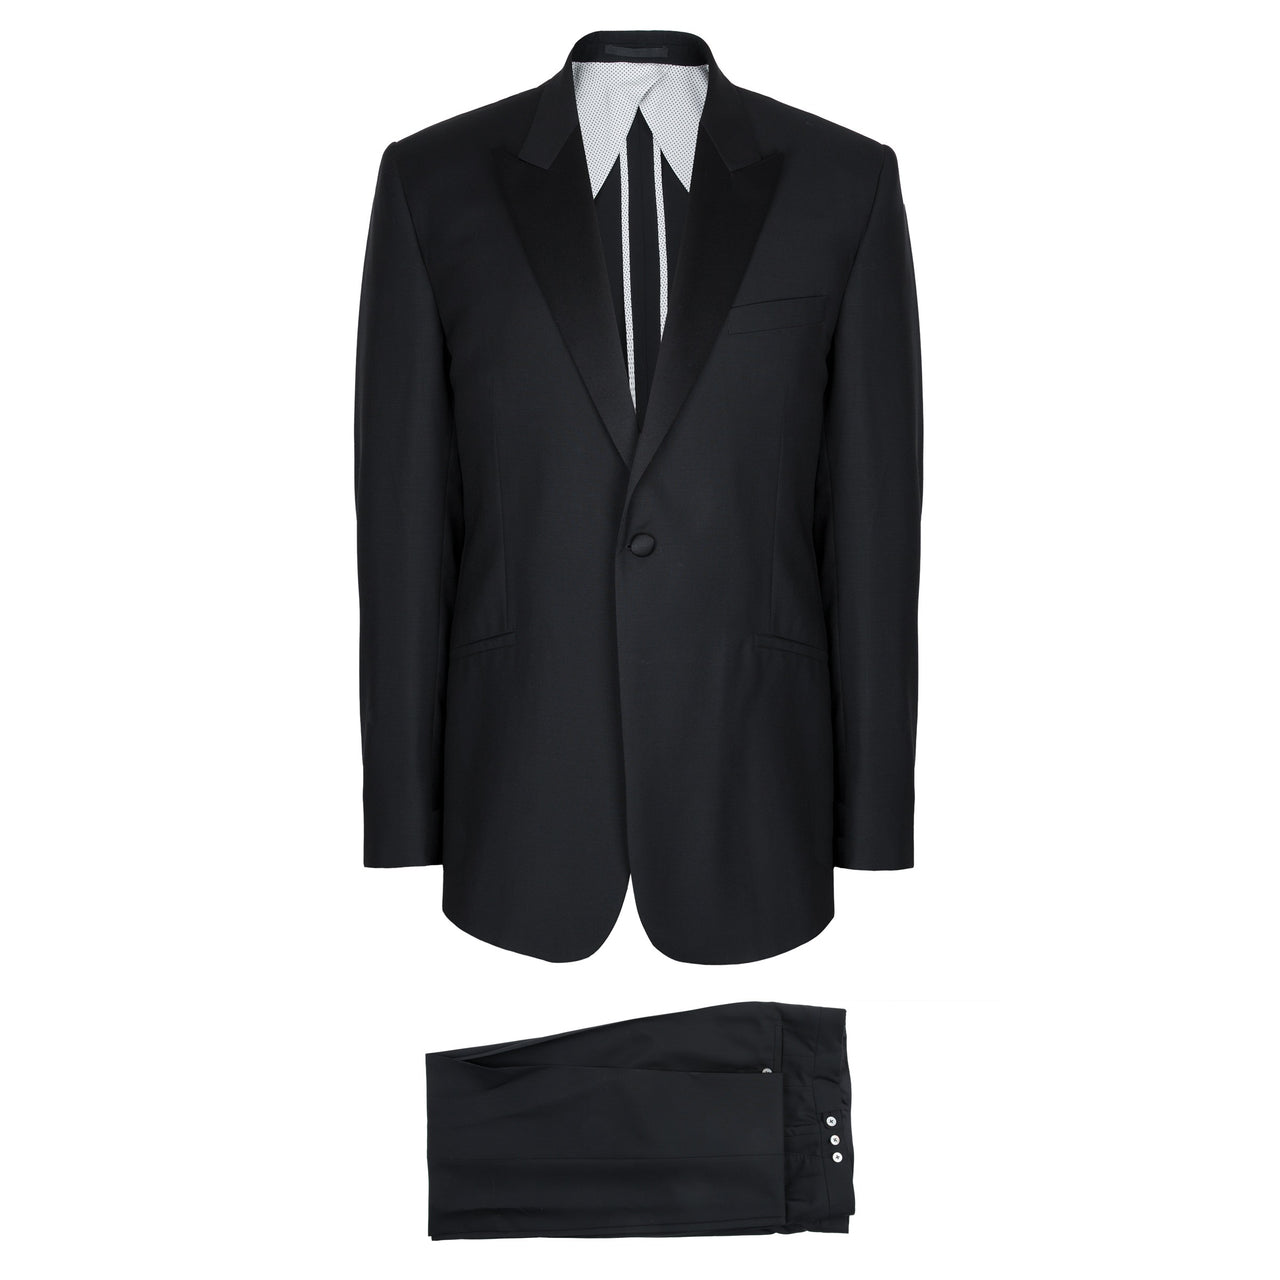 Kilgour Savile Row Luxury Wool & Mohair Peak Lapel Tuxedo